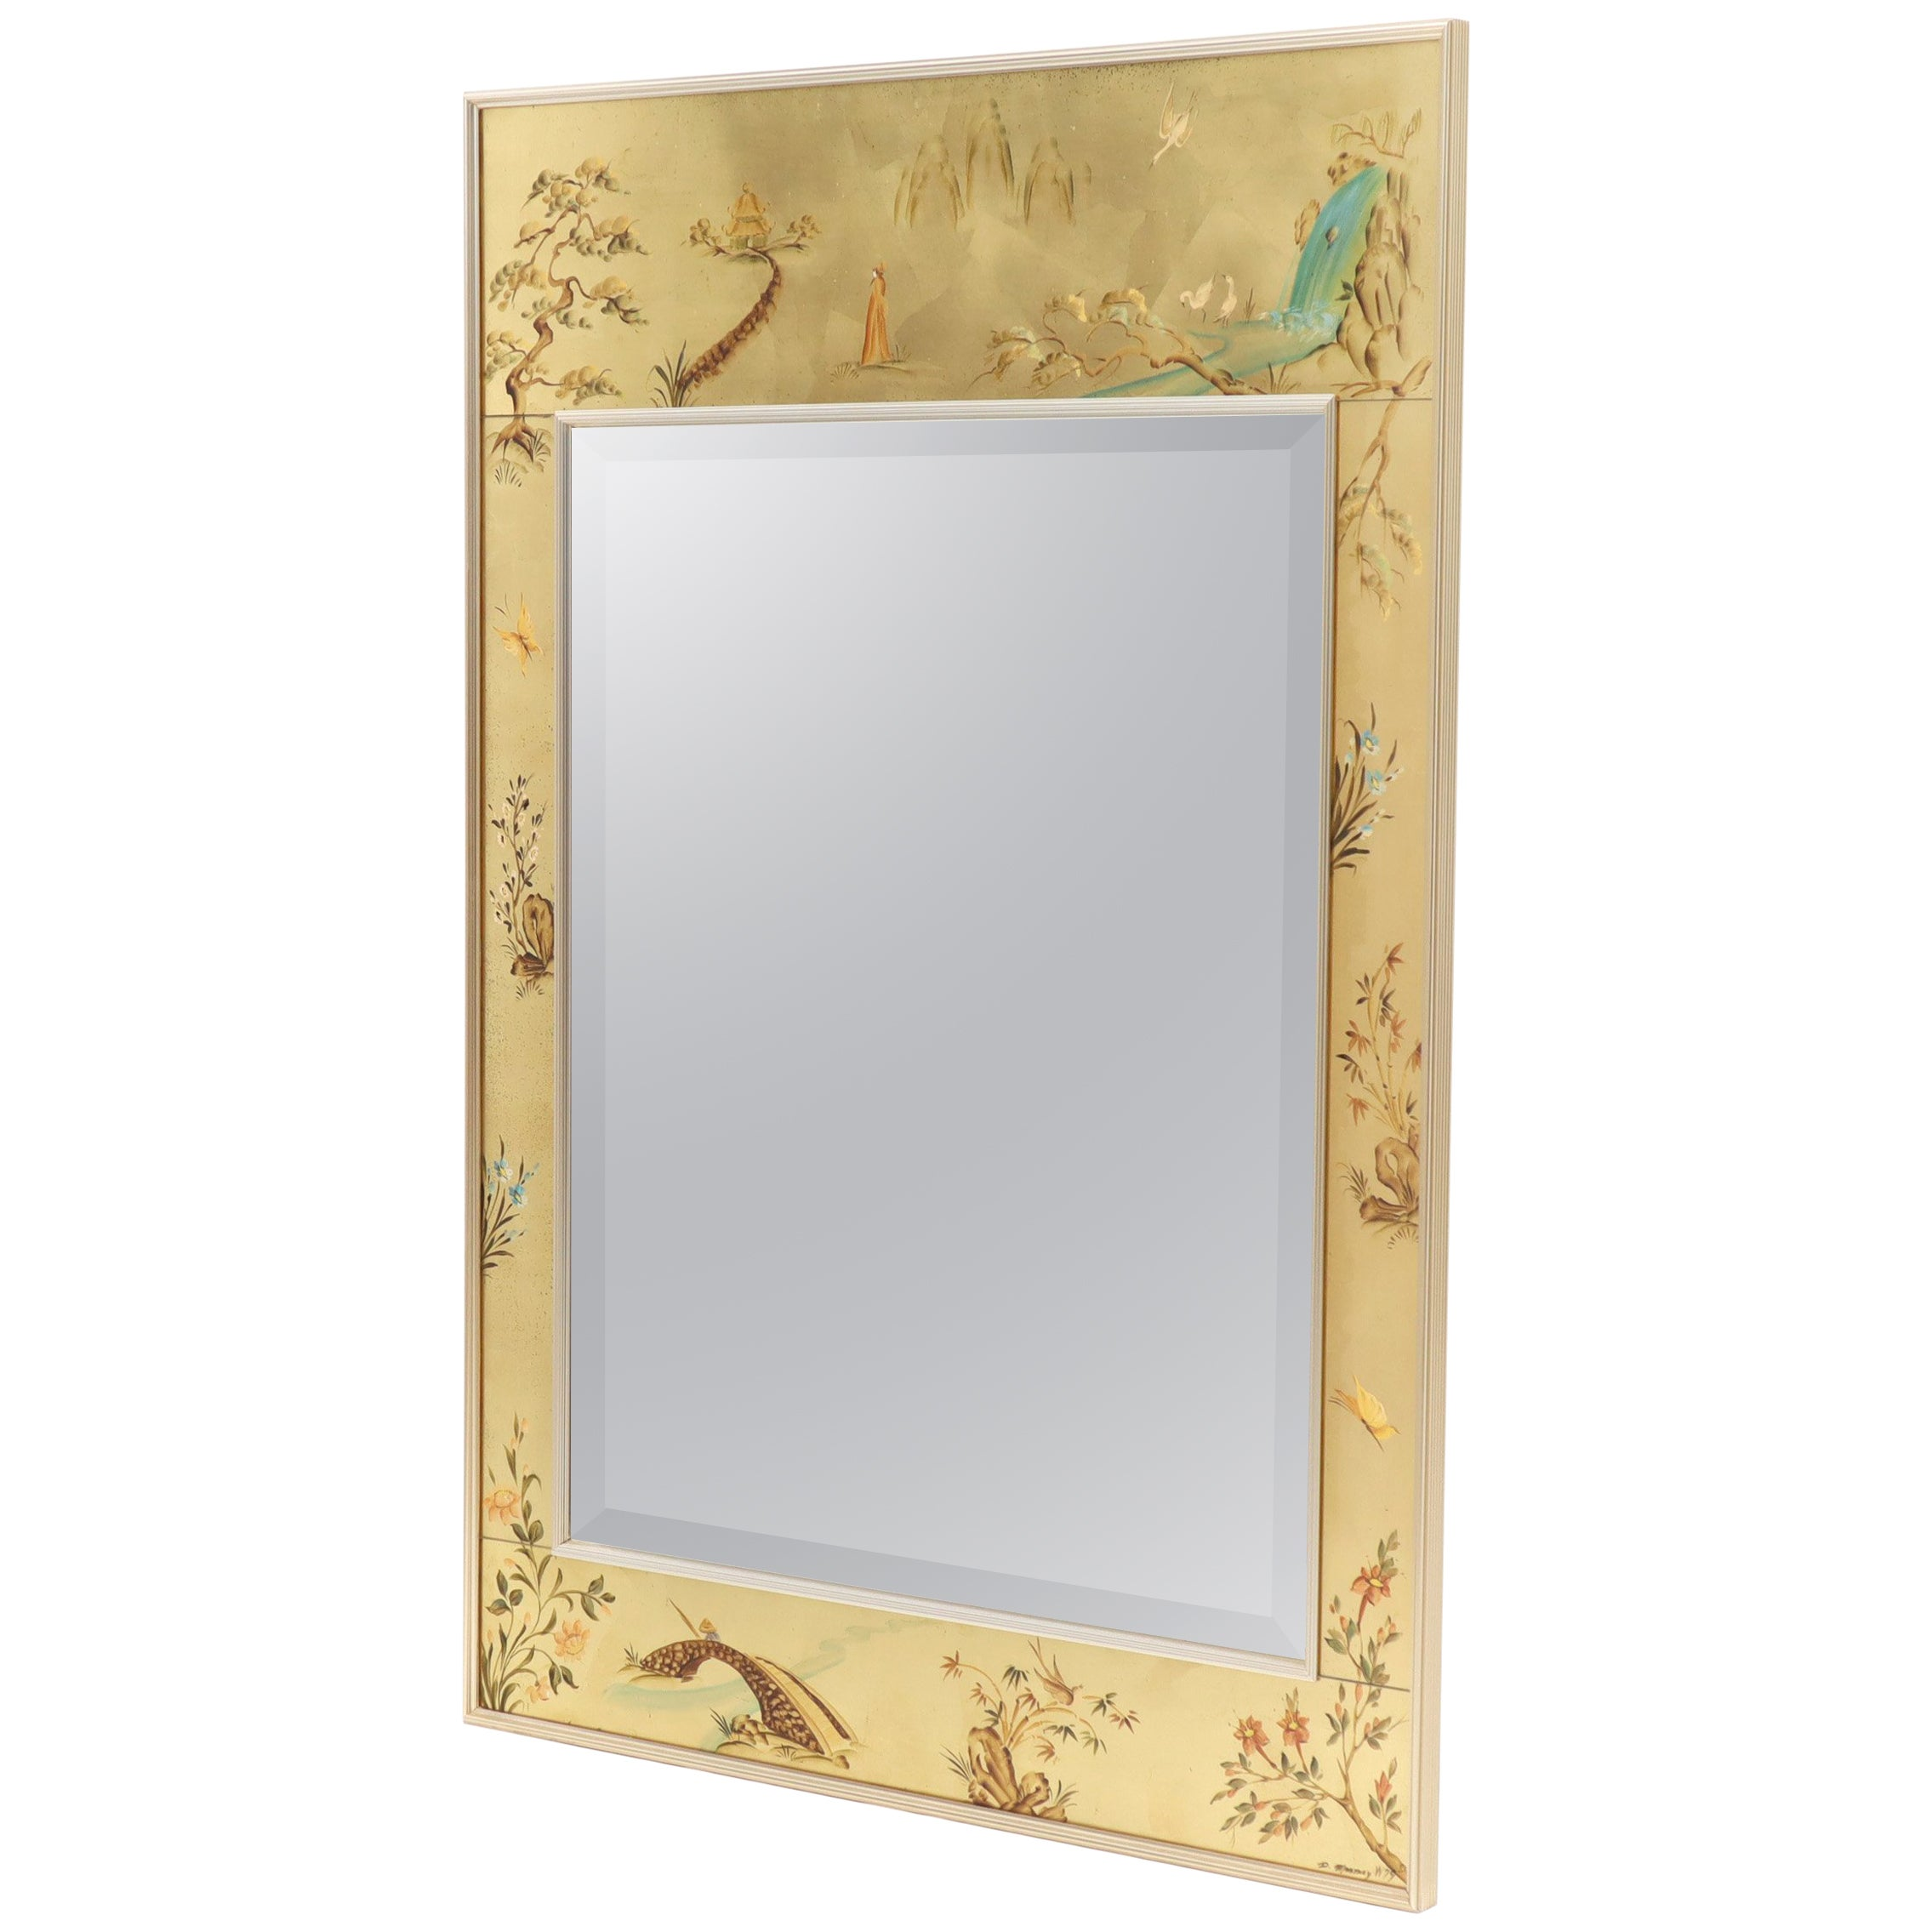 Decorative Mirror La Barge Reverse Painted Gold Leaf Rectangular Frame Decorative Mirror